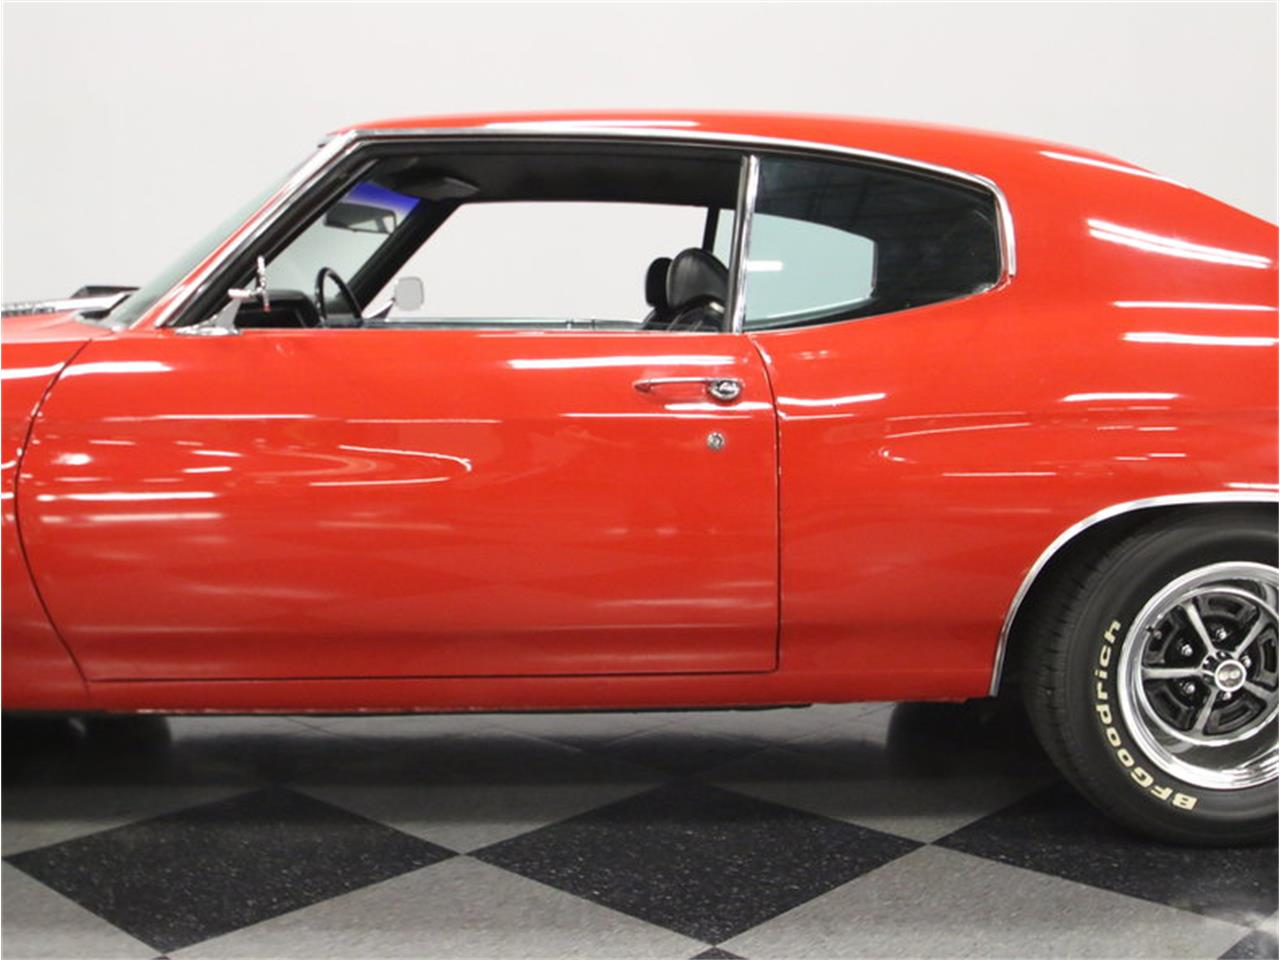 Large Picture of '70 Chevrolet Chevelle SS located in Tennessee - $45,995.00 - MFNU